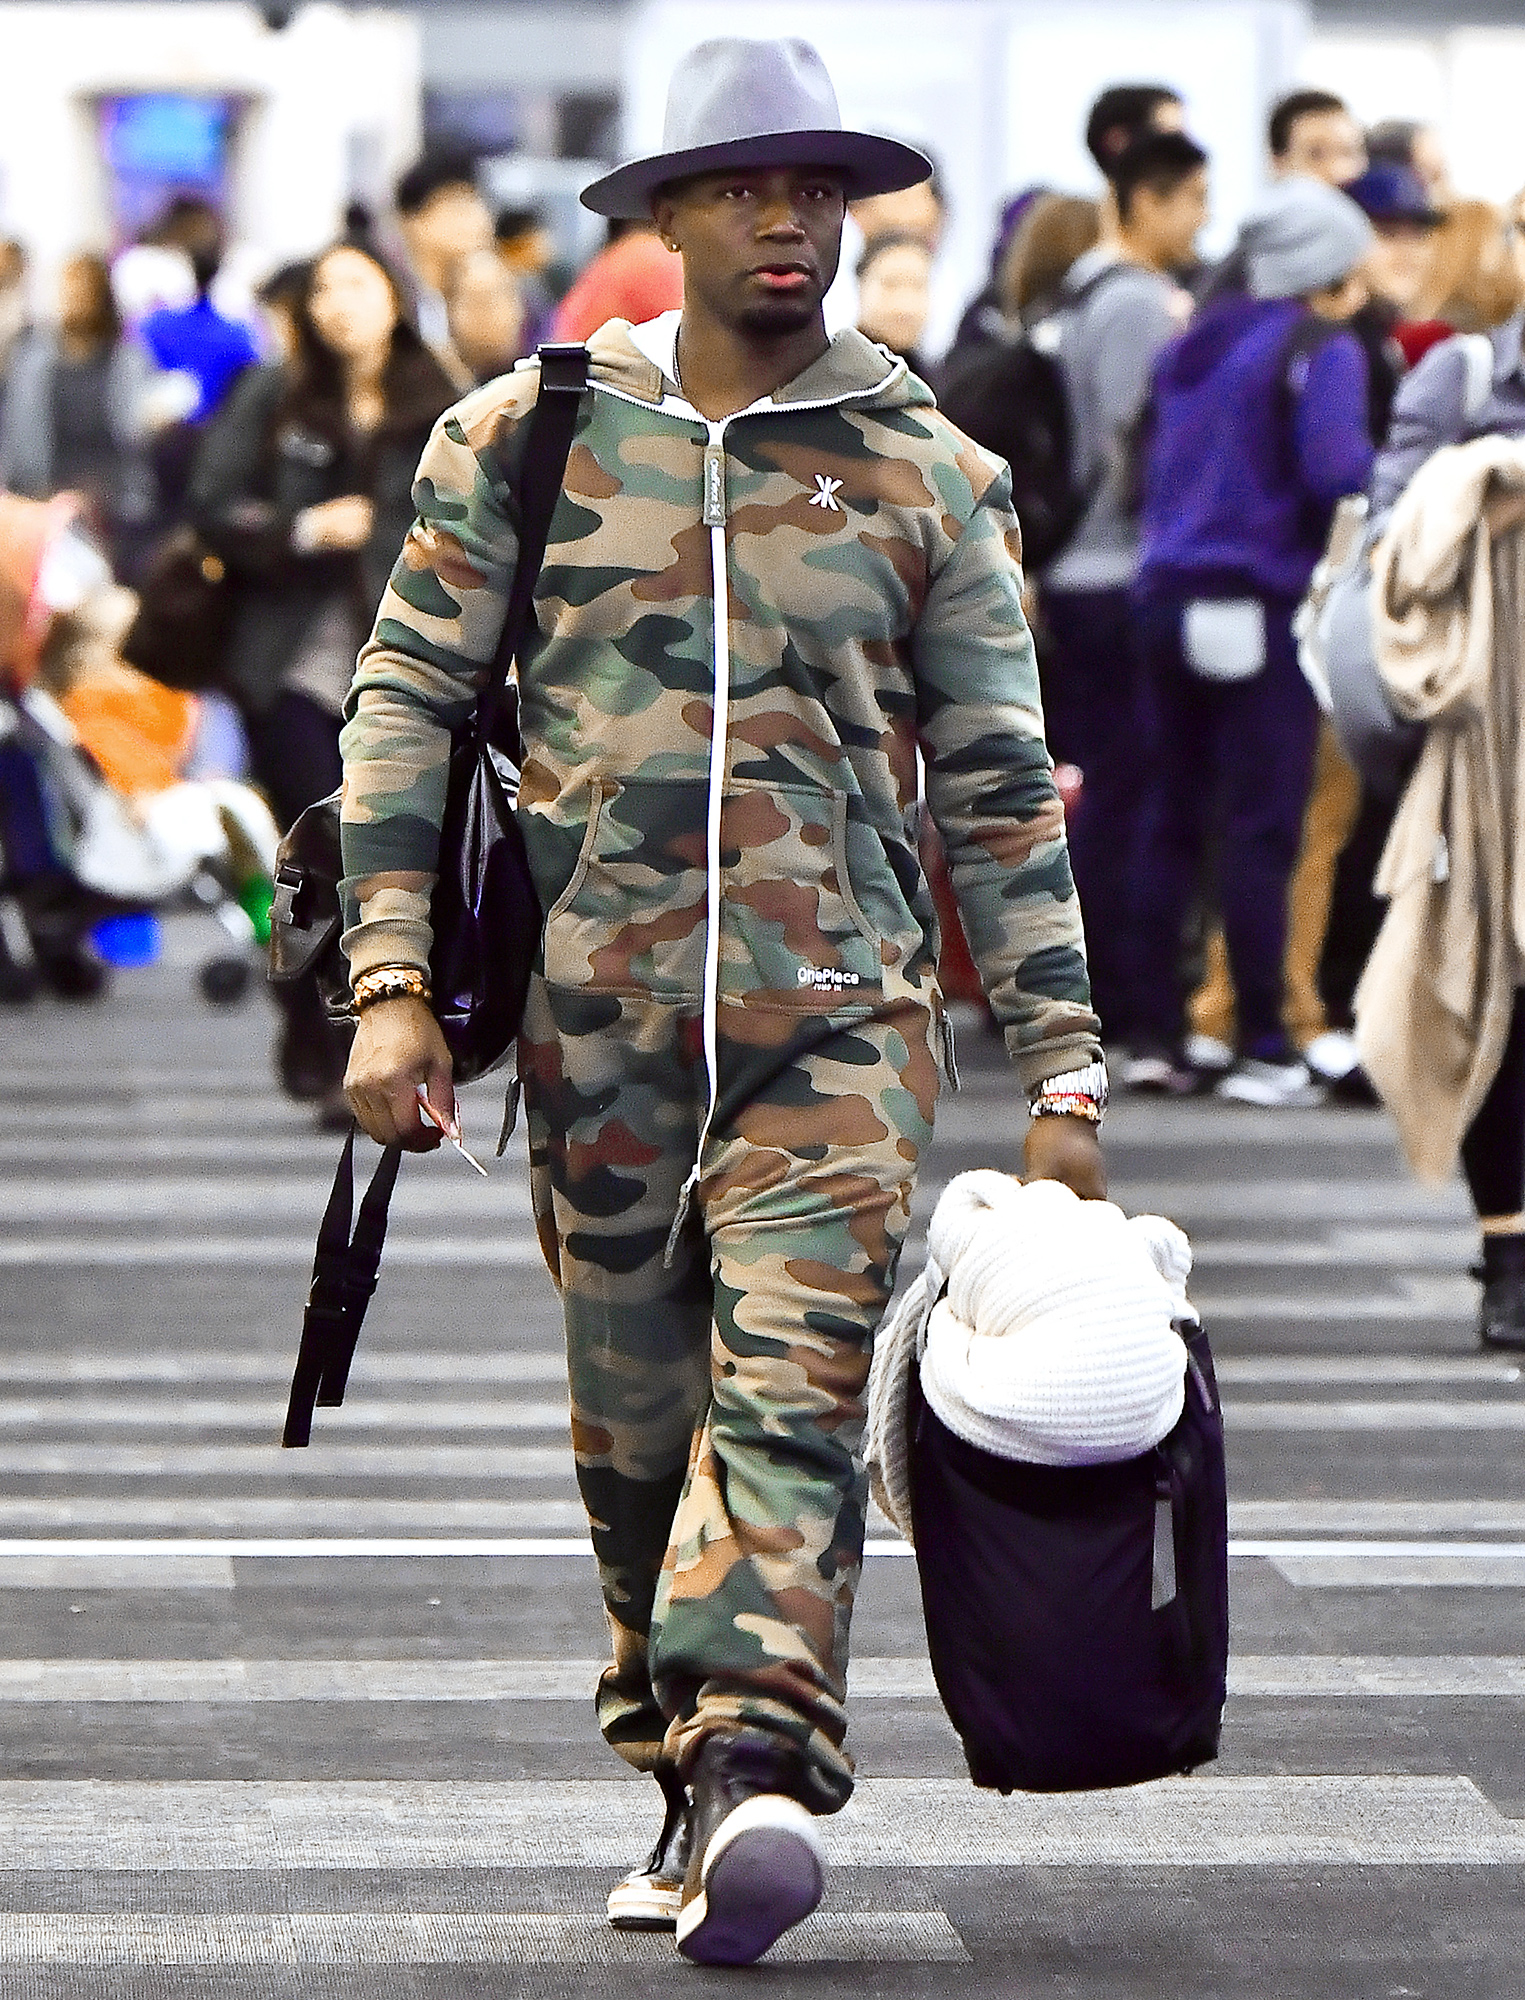 EXCLUSIVE: Taye Diggs spotted wearing a camouflage onesie and a big fedora hat while catching a flight out of LAX in Los Angeles